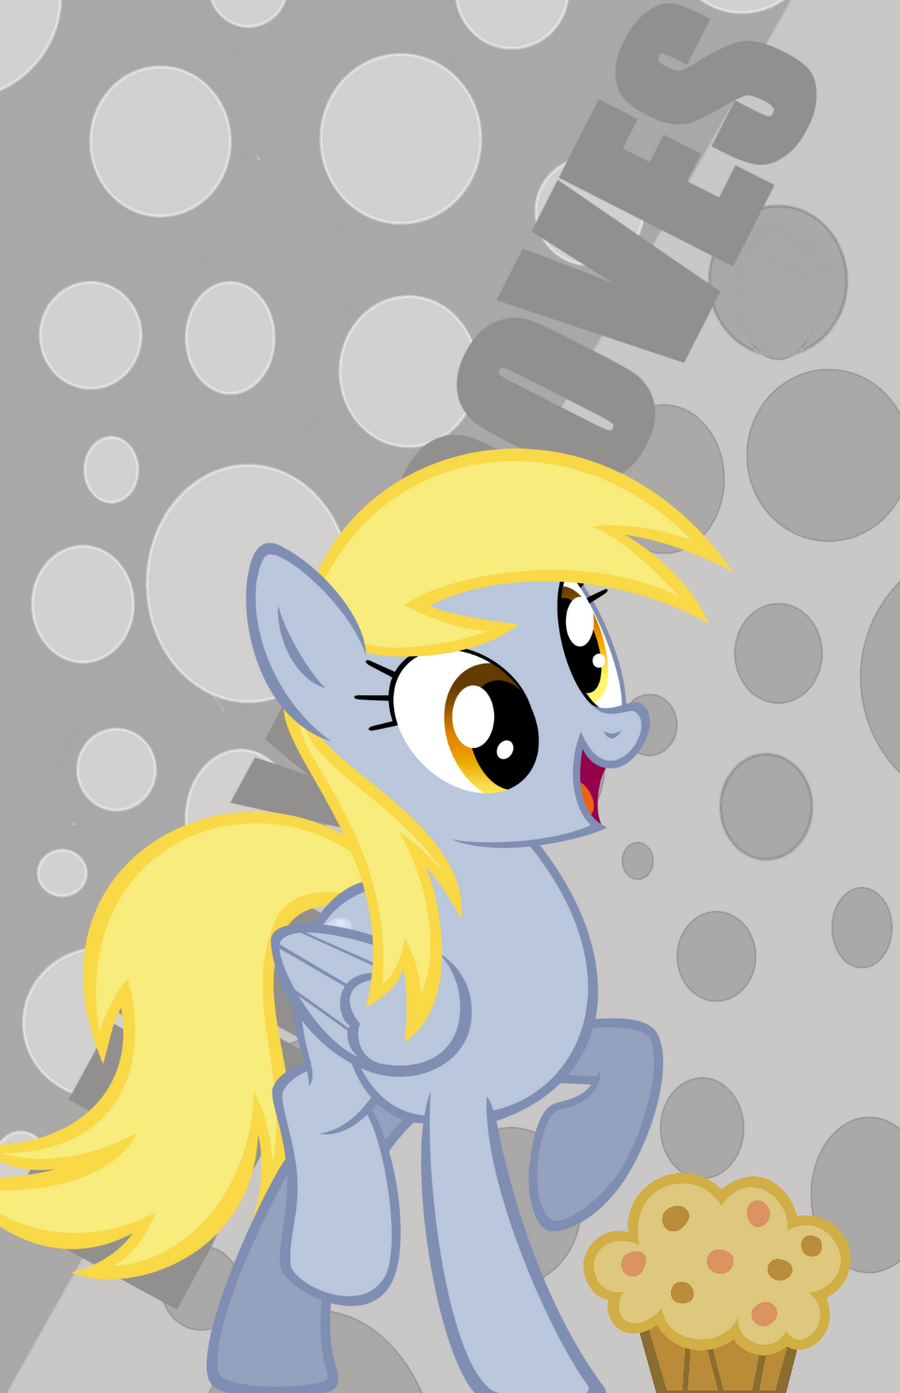 SonicRainBoomFTW Derpy Hooves Wallpaper MOBILE By